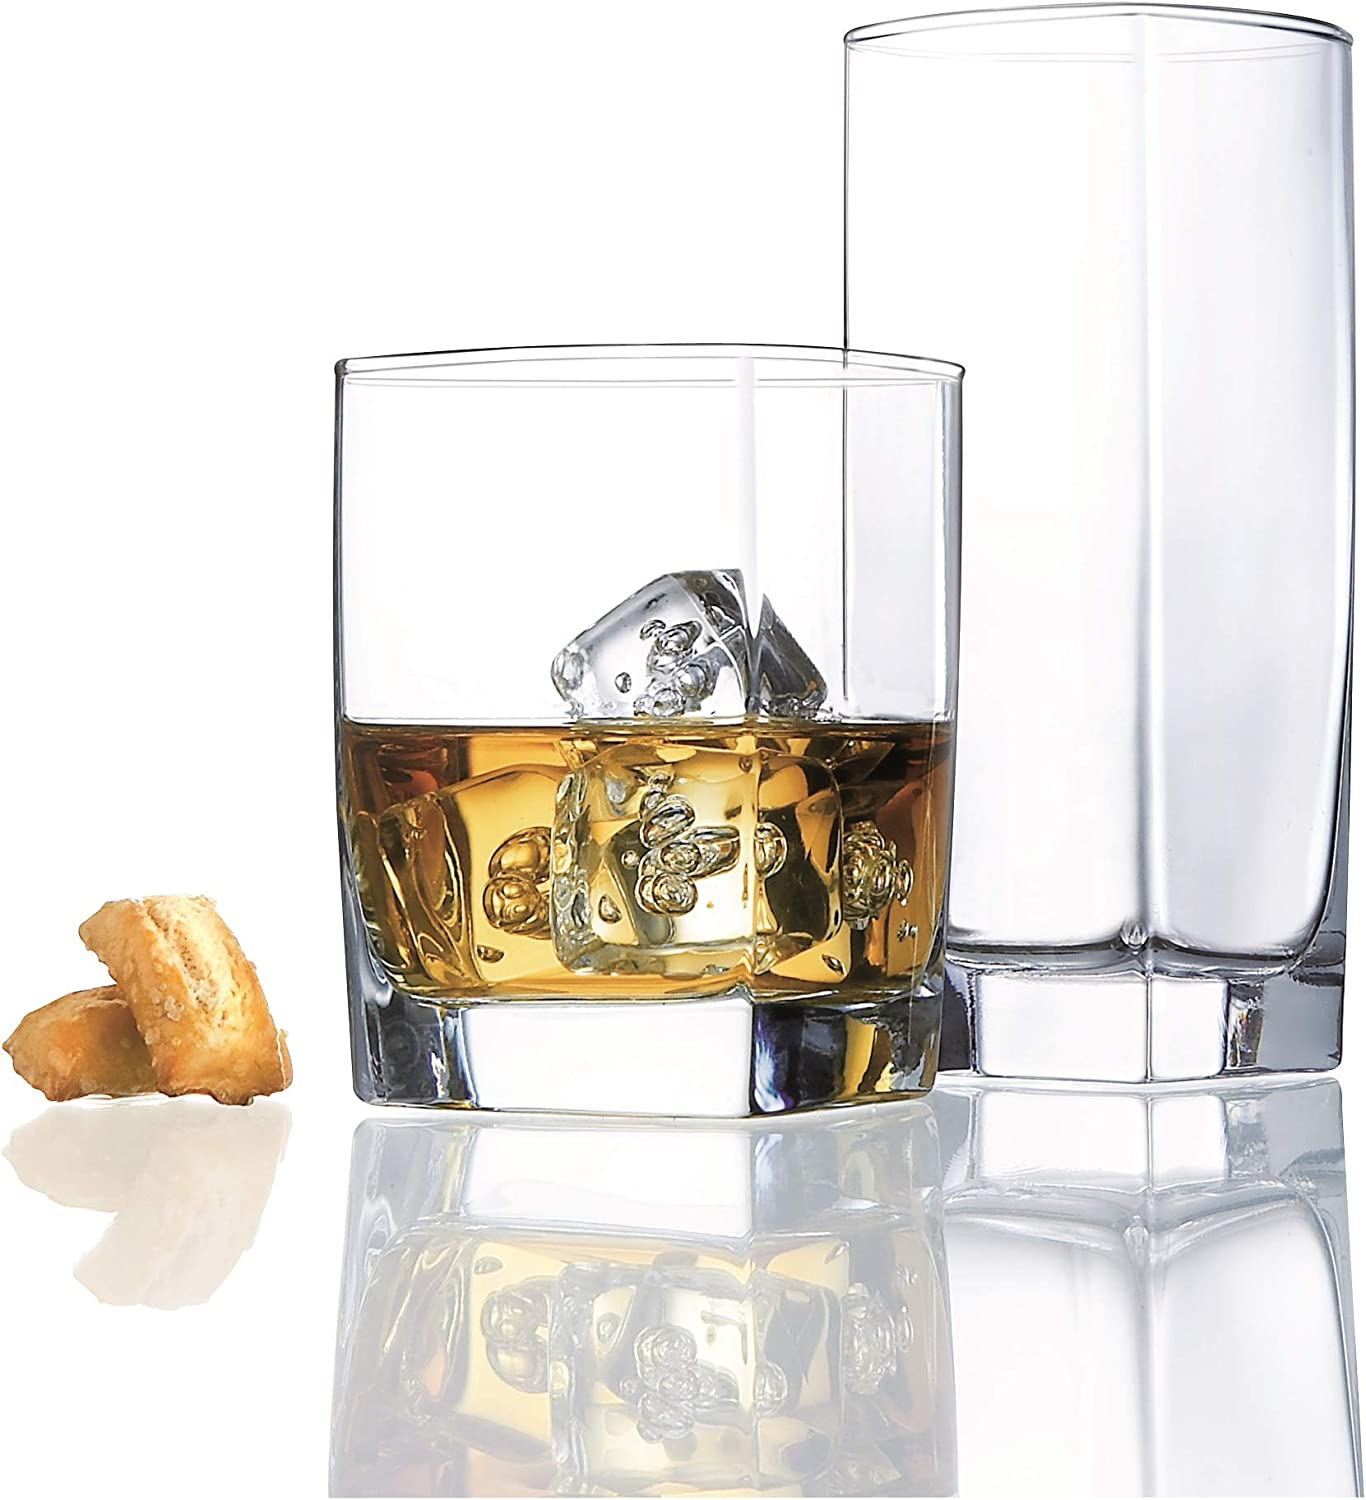 Limited Special Price Durable Drinking Glasses Product Set of 8 Glassware 16 Includes Hi